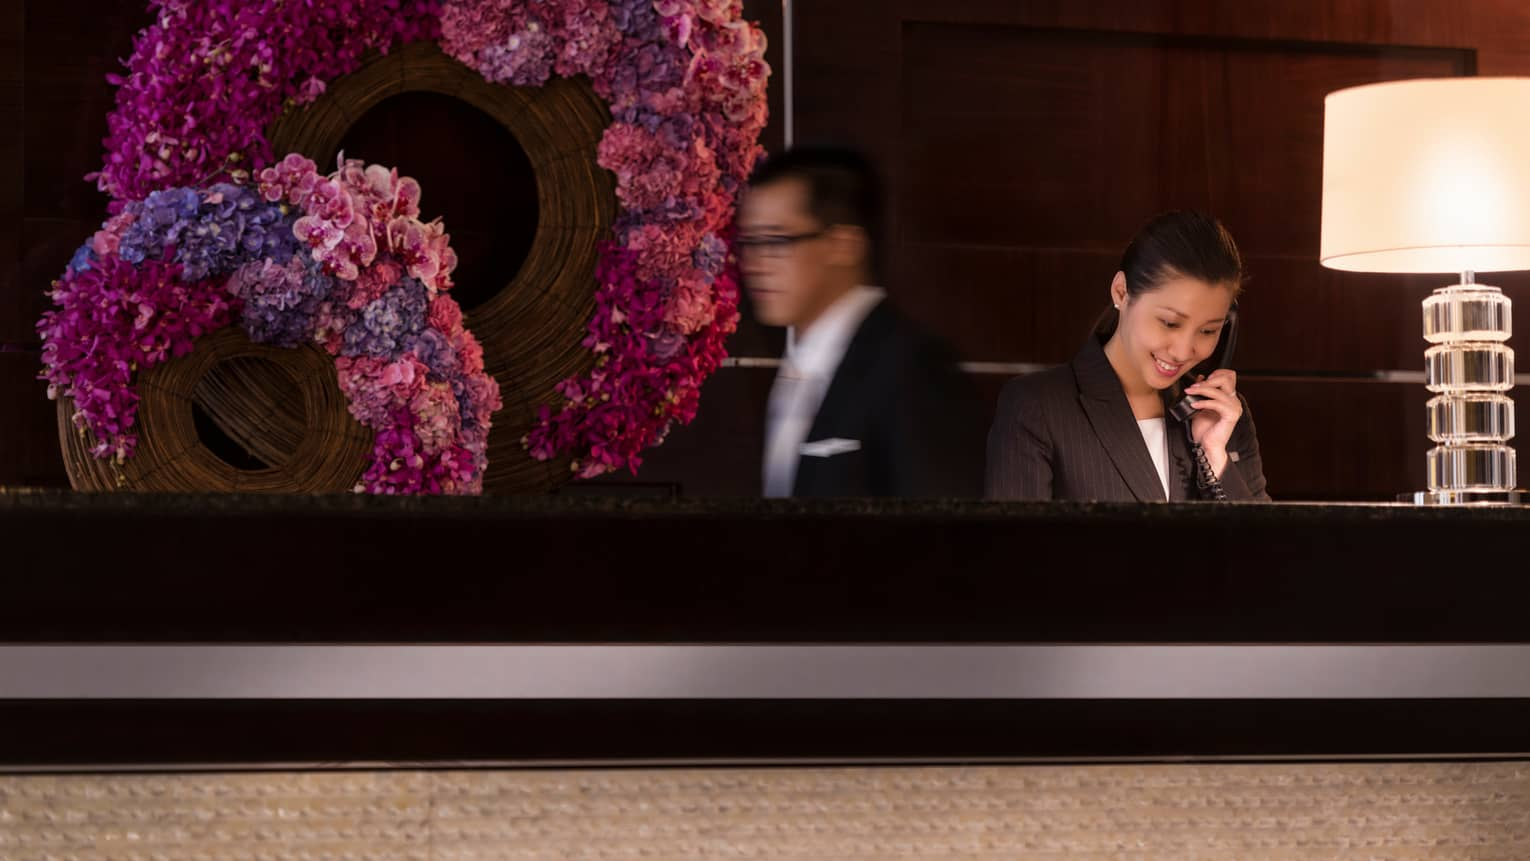 Staff at concierge desk in front of pink-and-purple floral wreaths